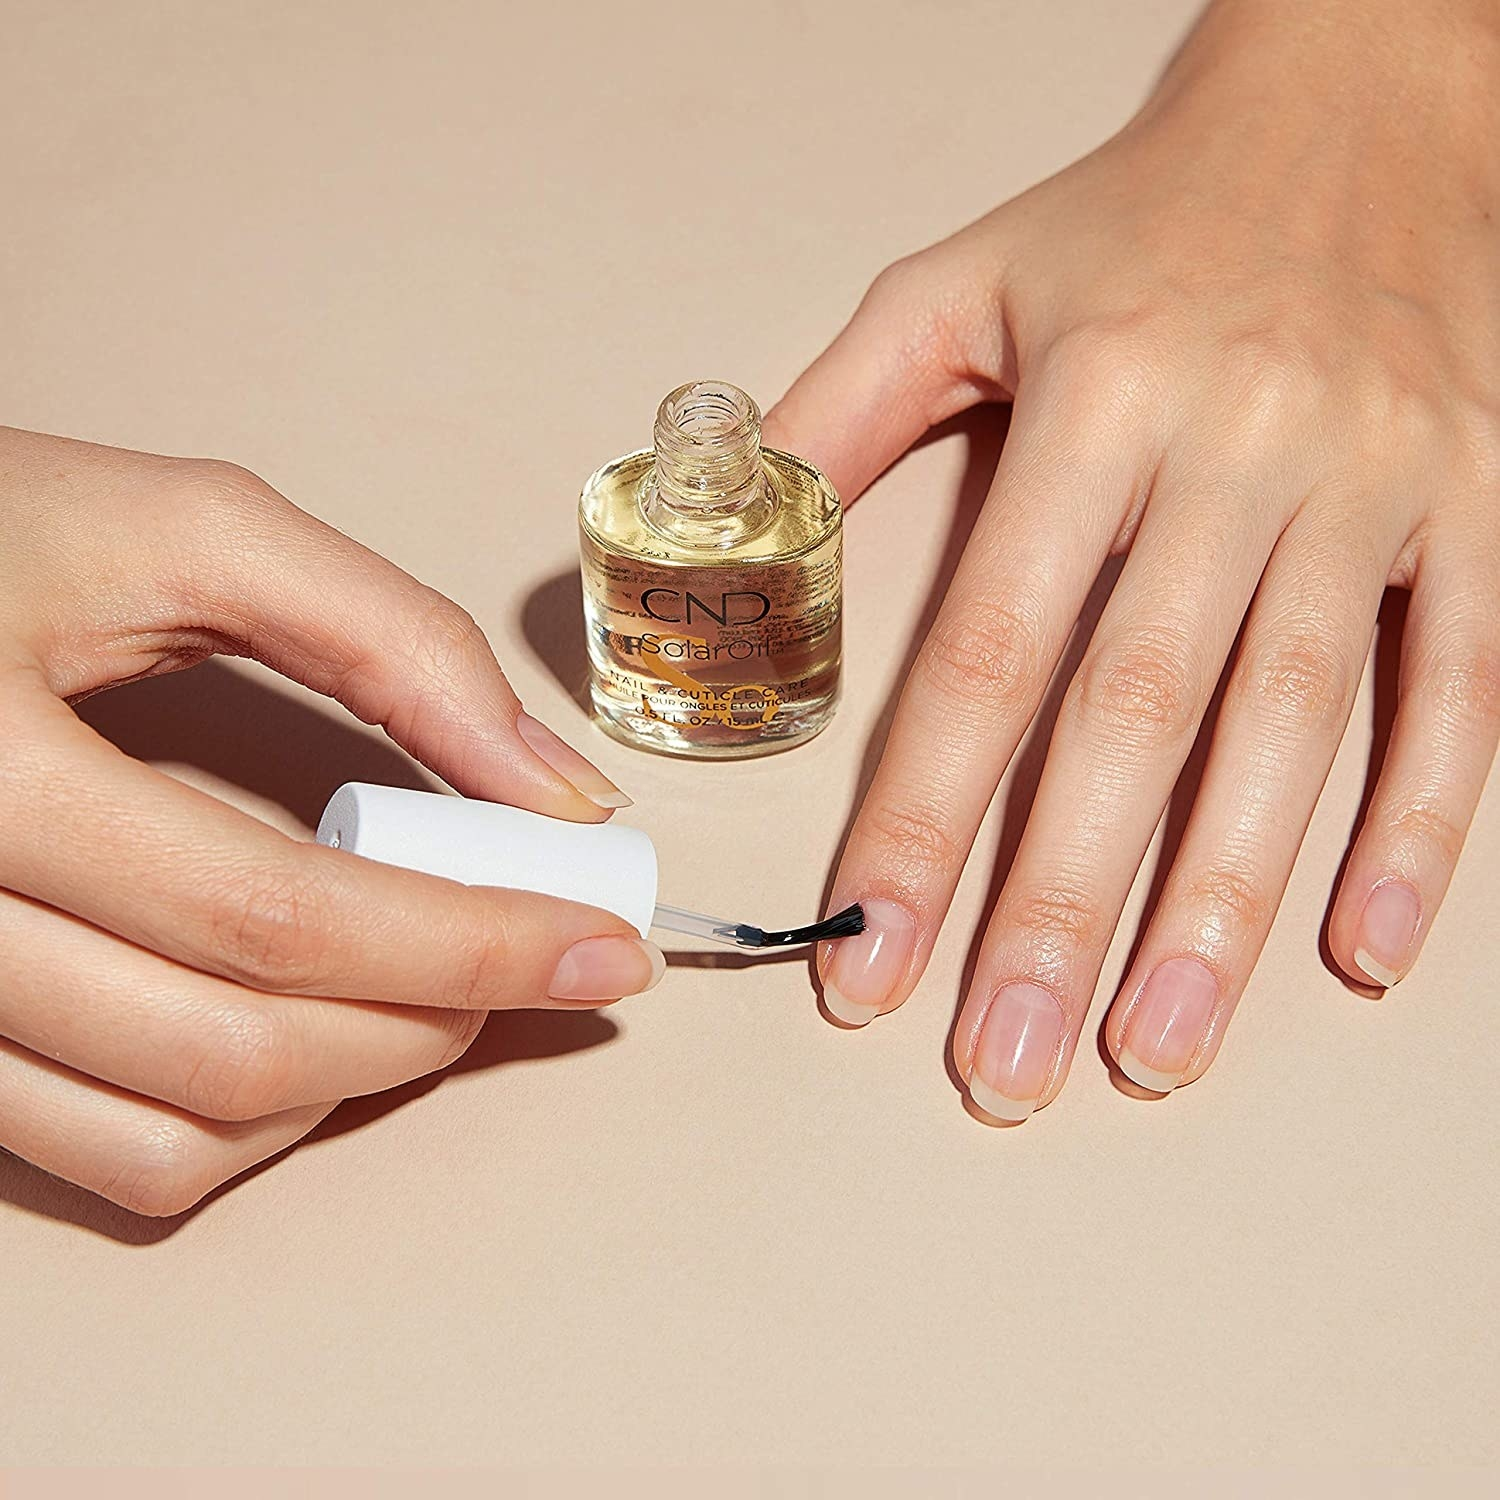 A person applying cuticle oil to their nails